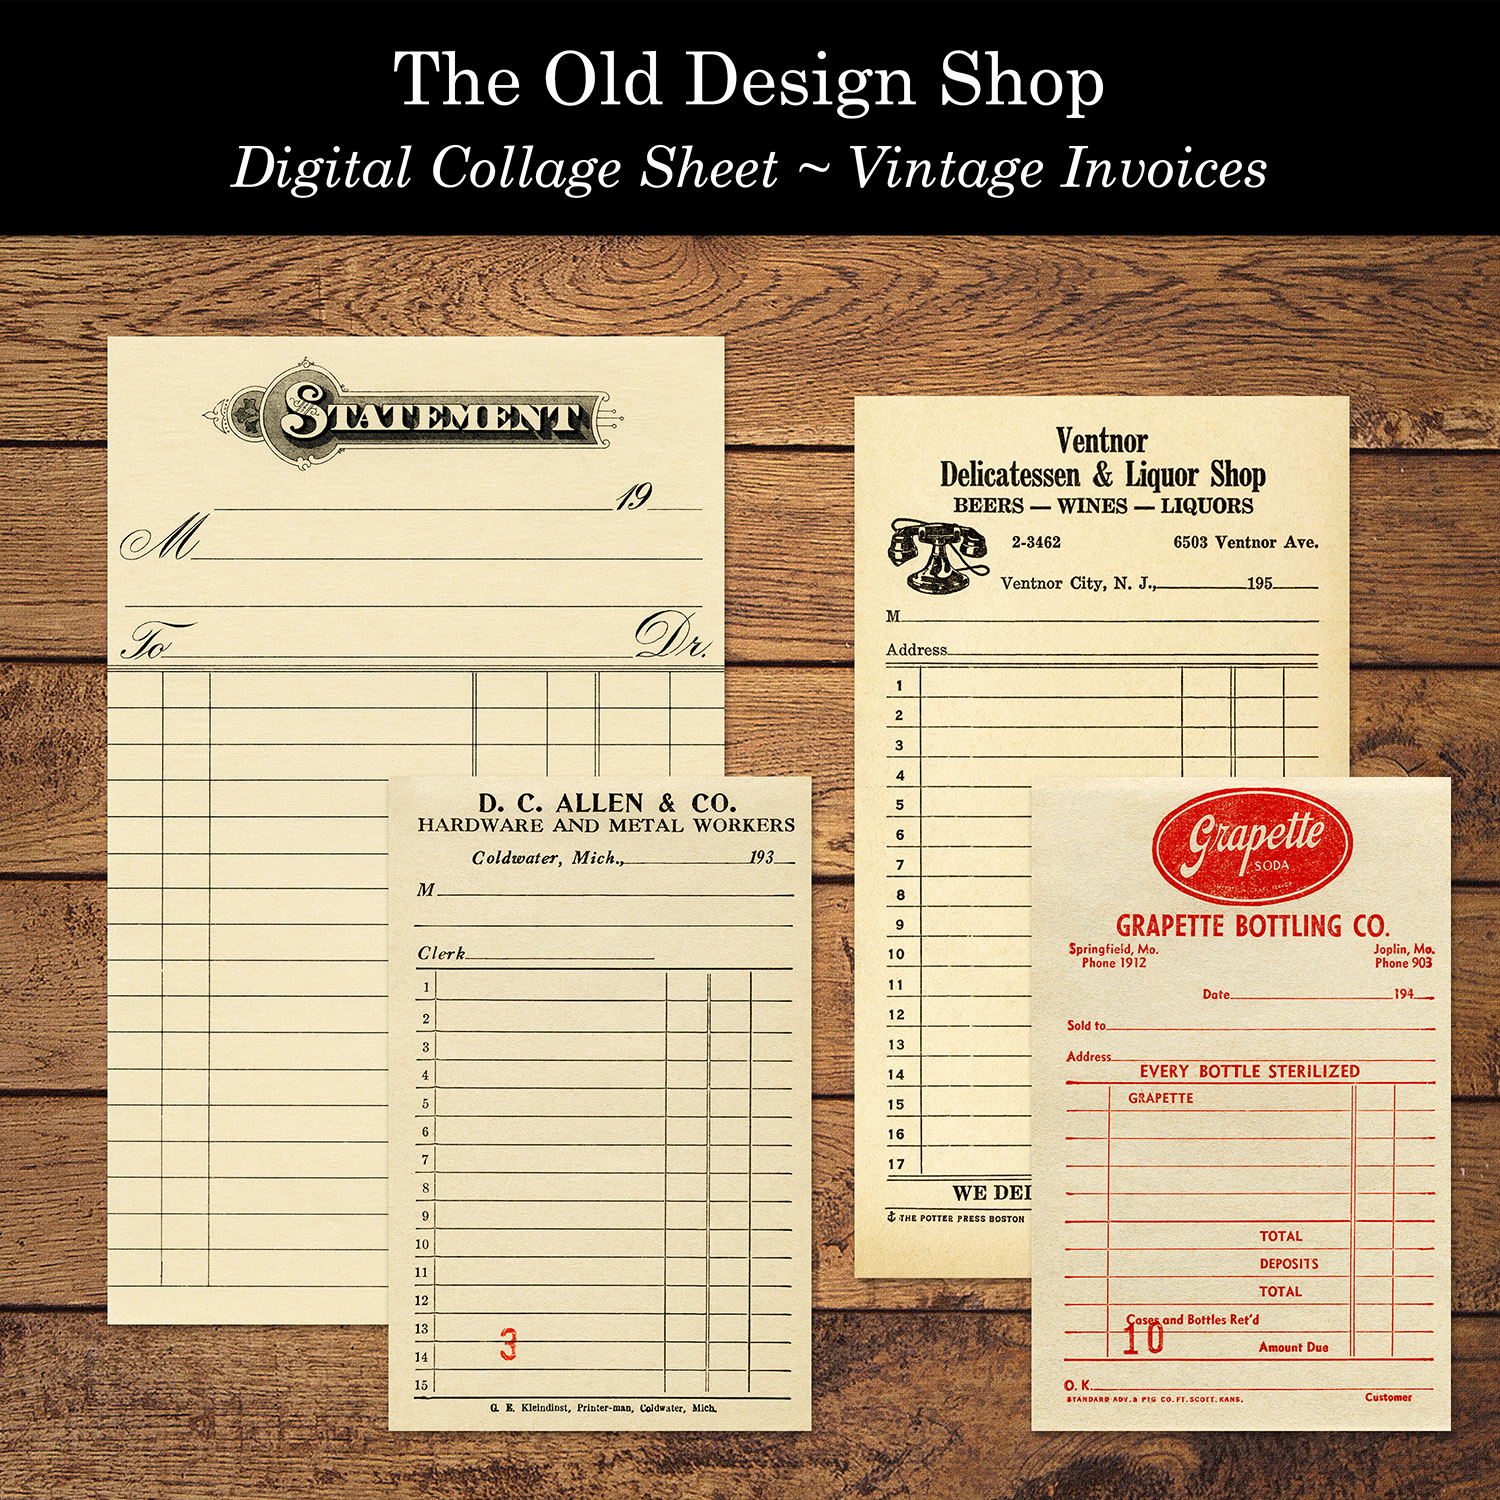 digital collage sheet vintage invoices